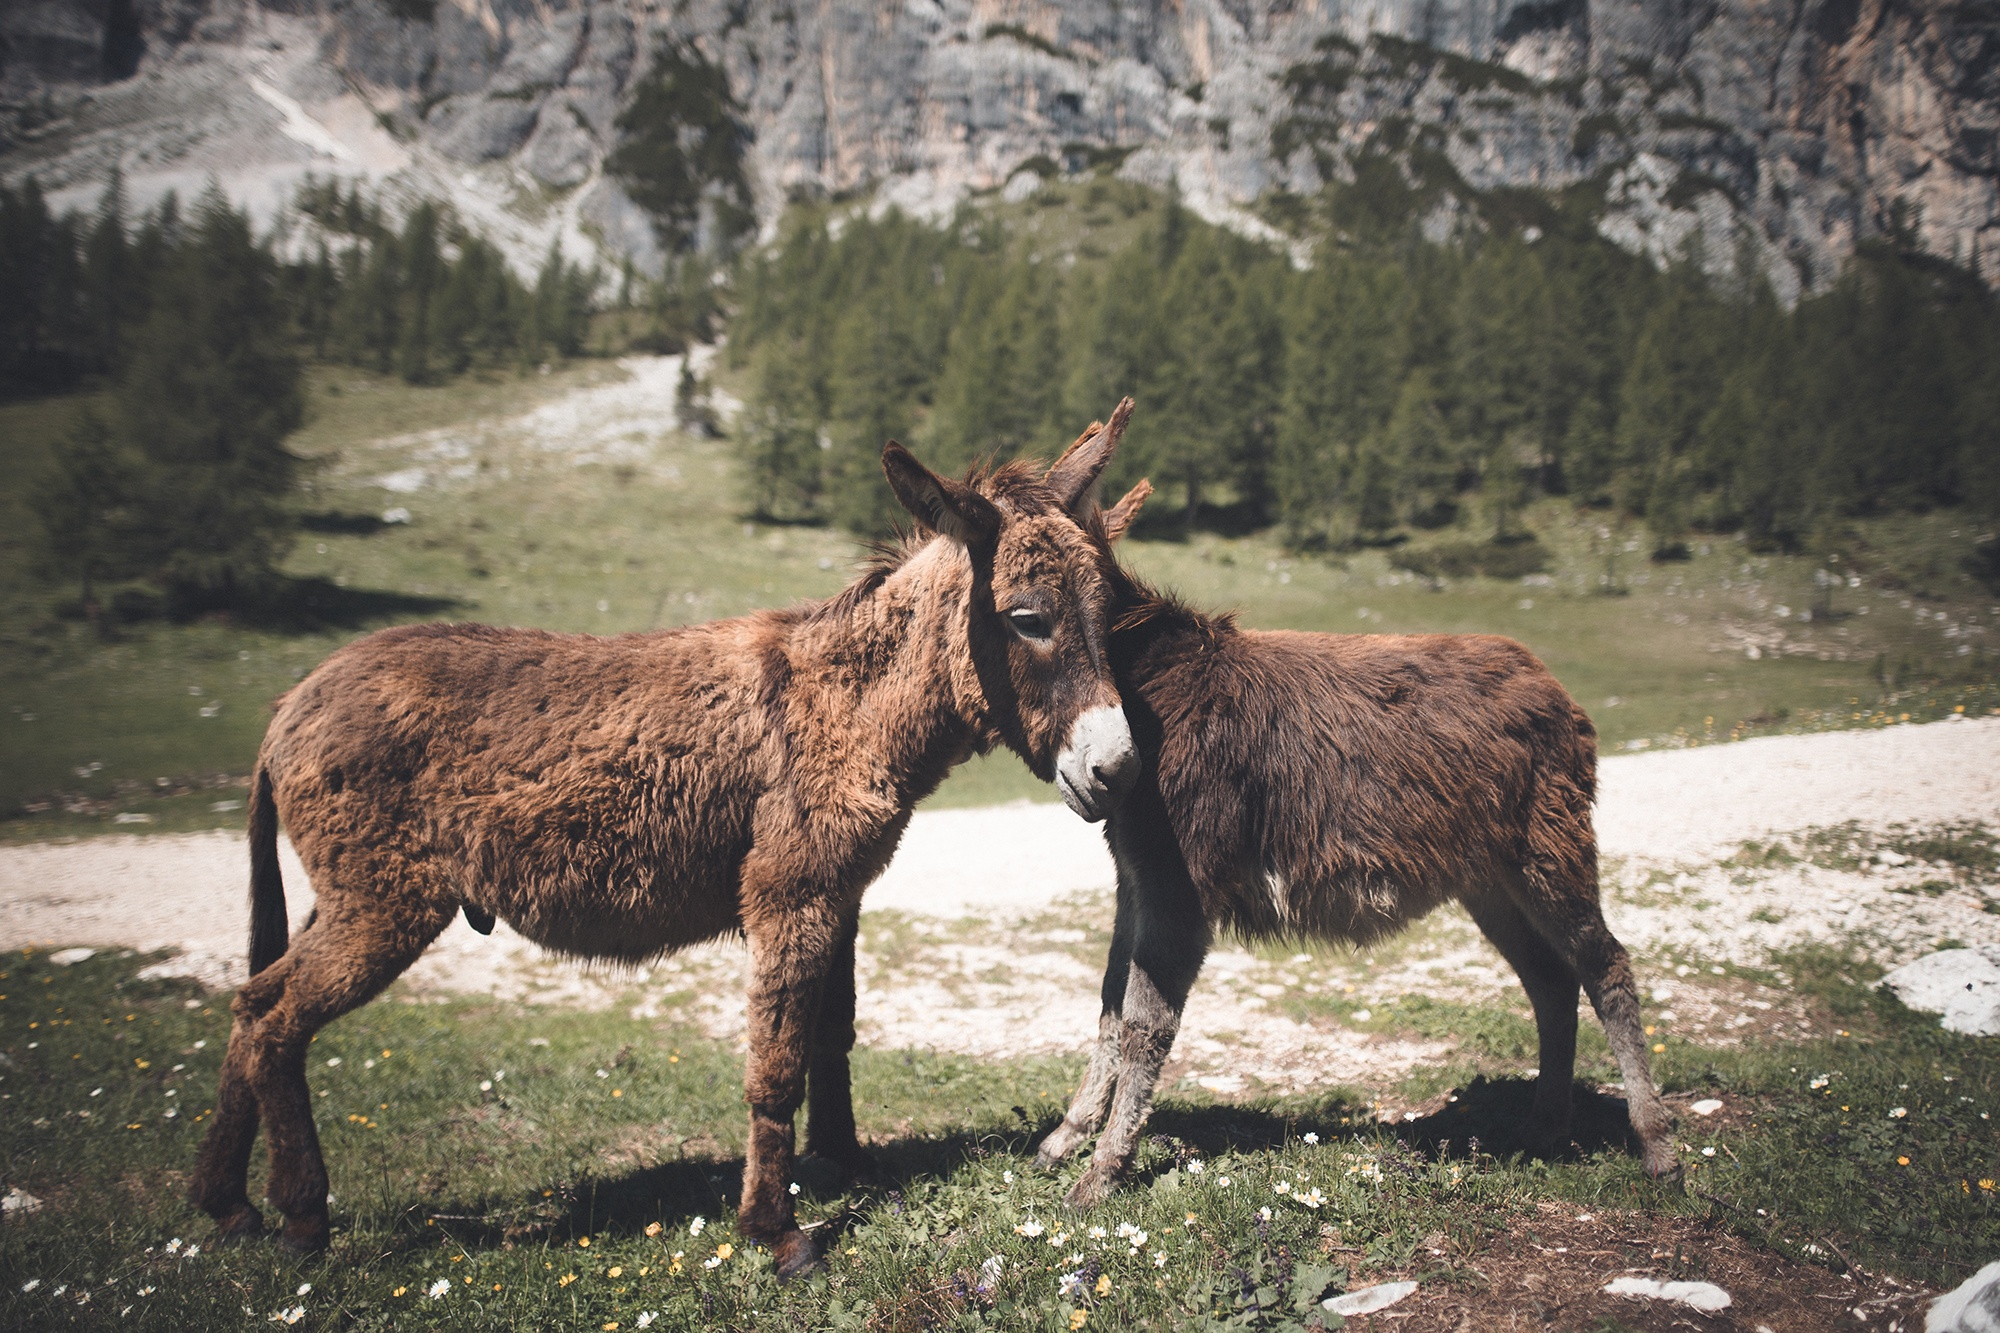 two donkeys standing on green grass